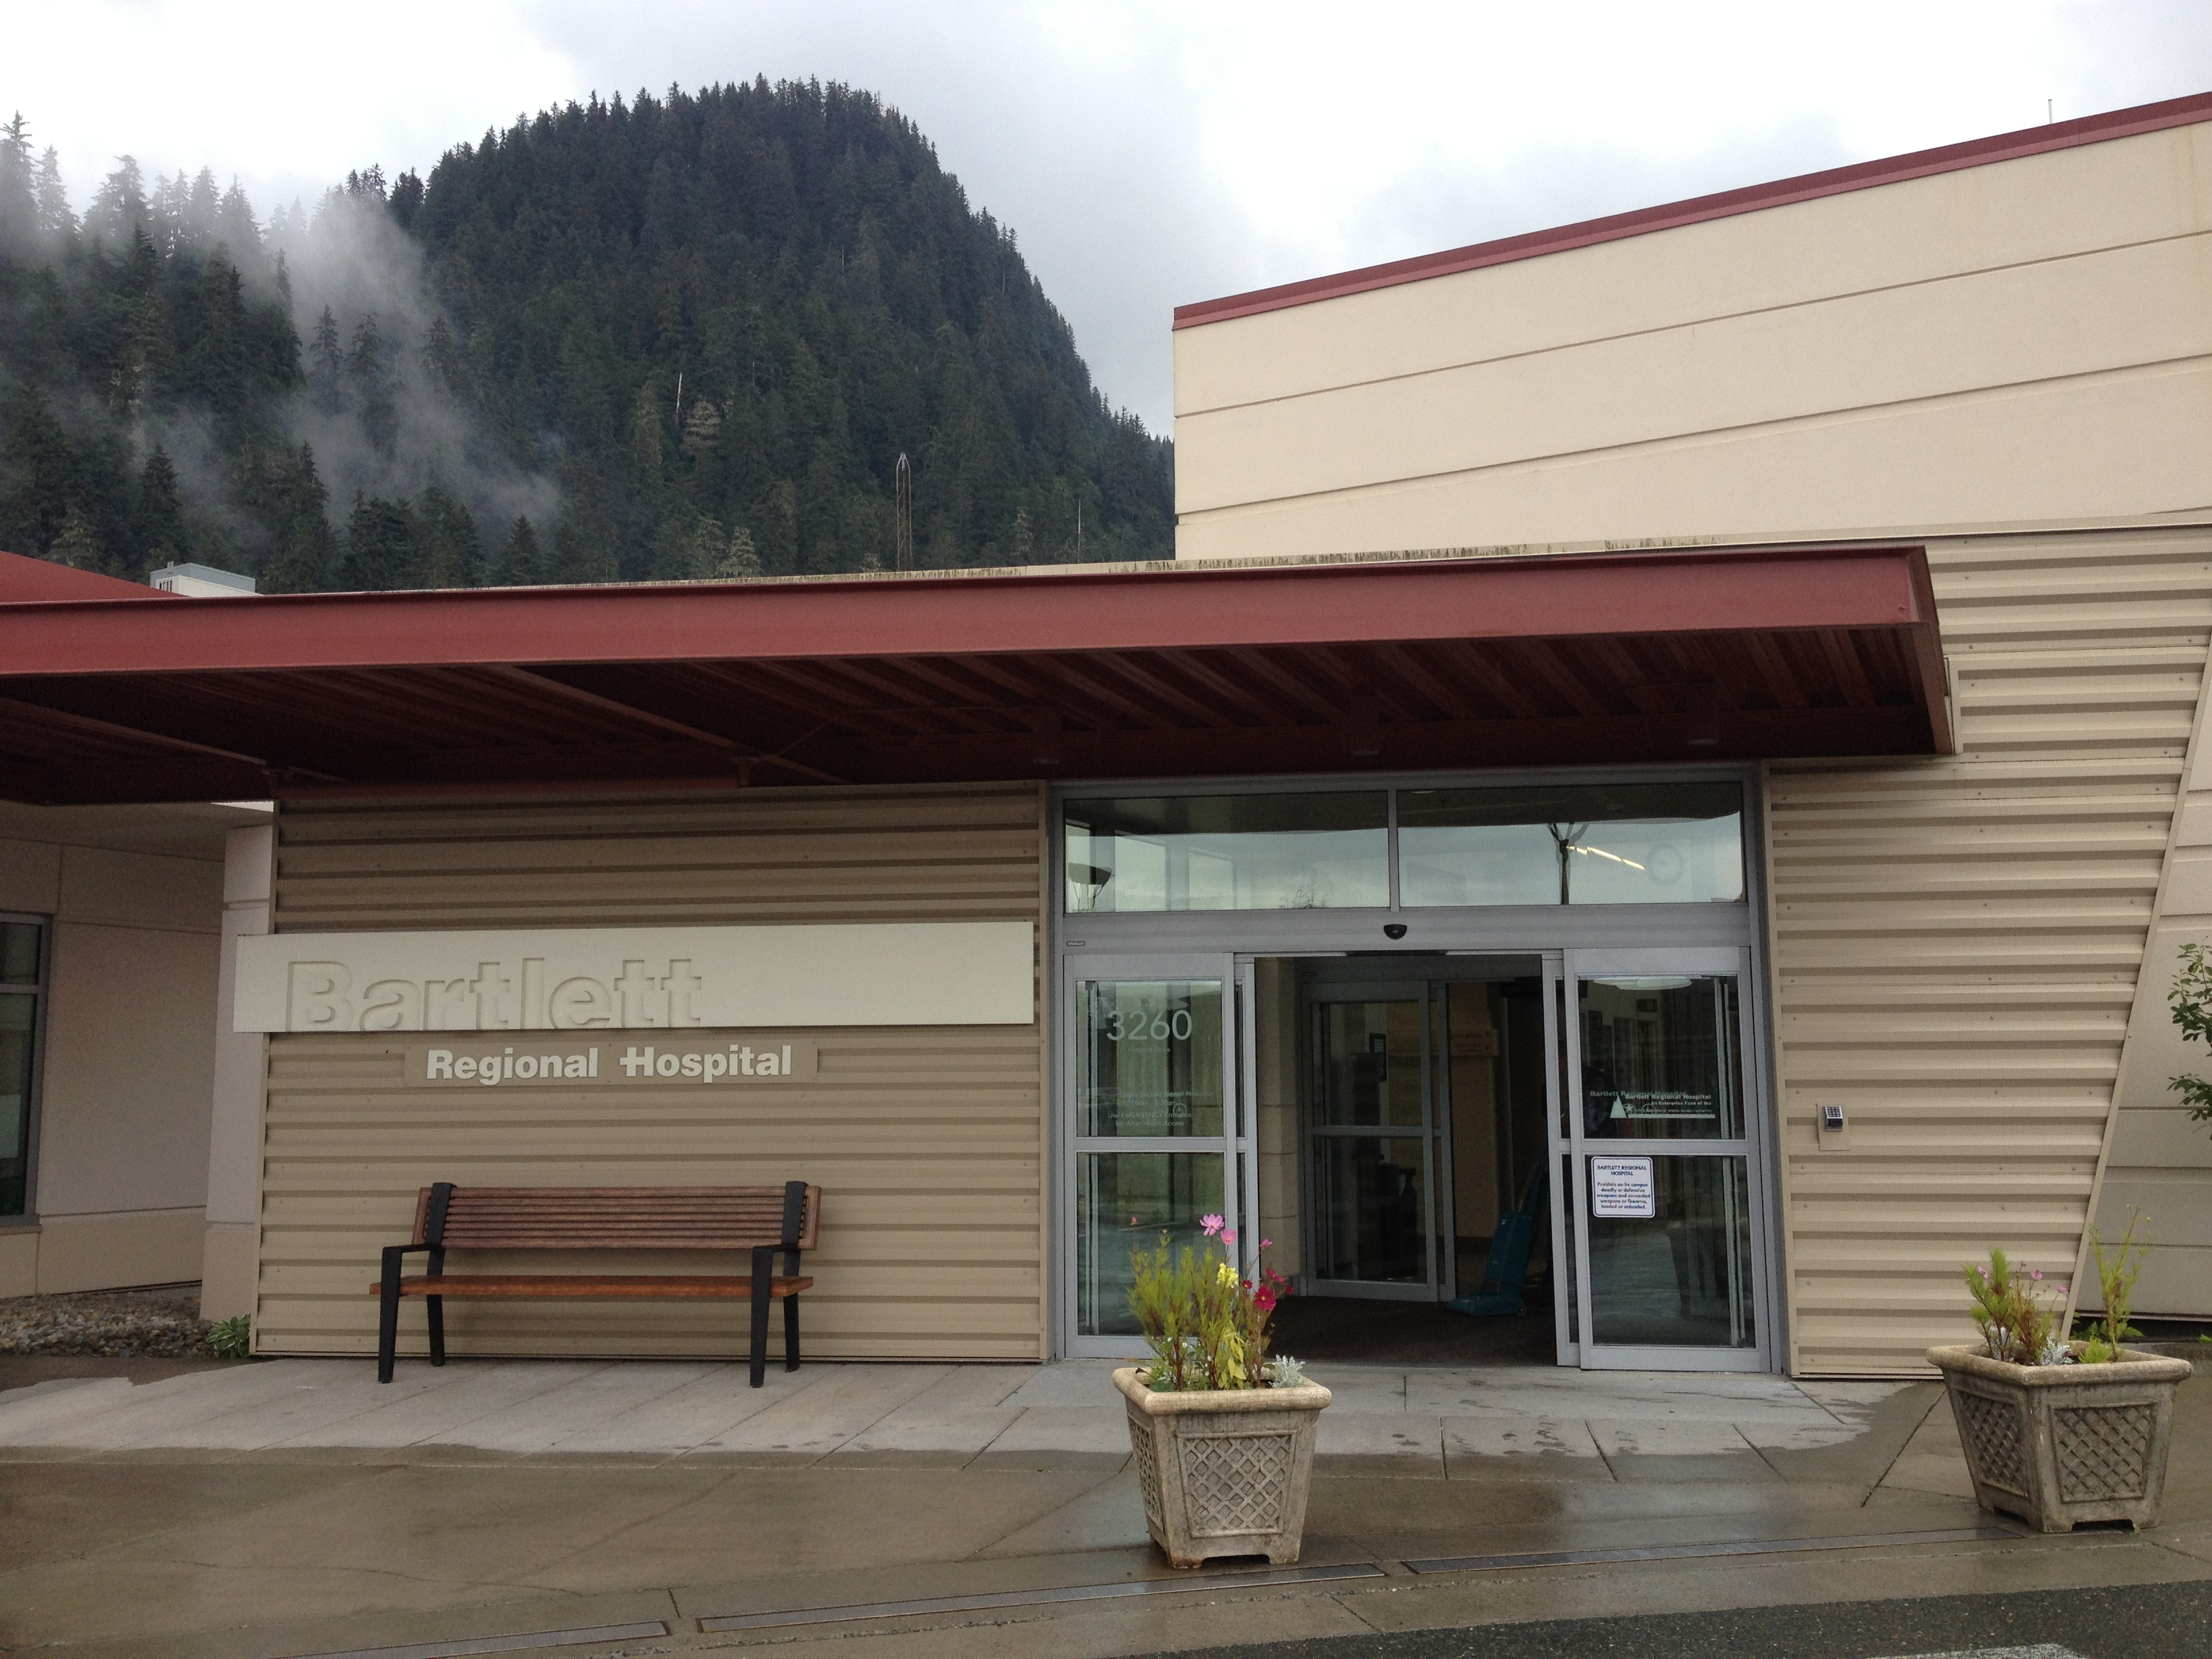 Enroll Alaska sets up office at Bartlett Regional Hospital starting Wednesday. (Photo by Lisa Phu/KTOO)